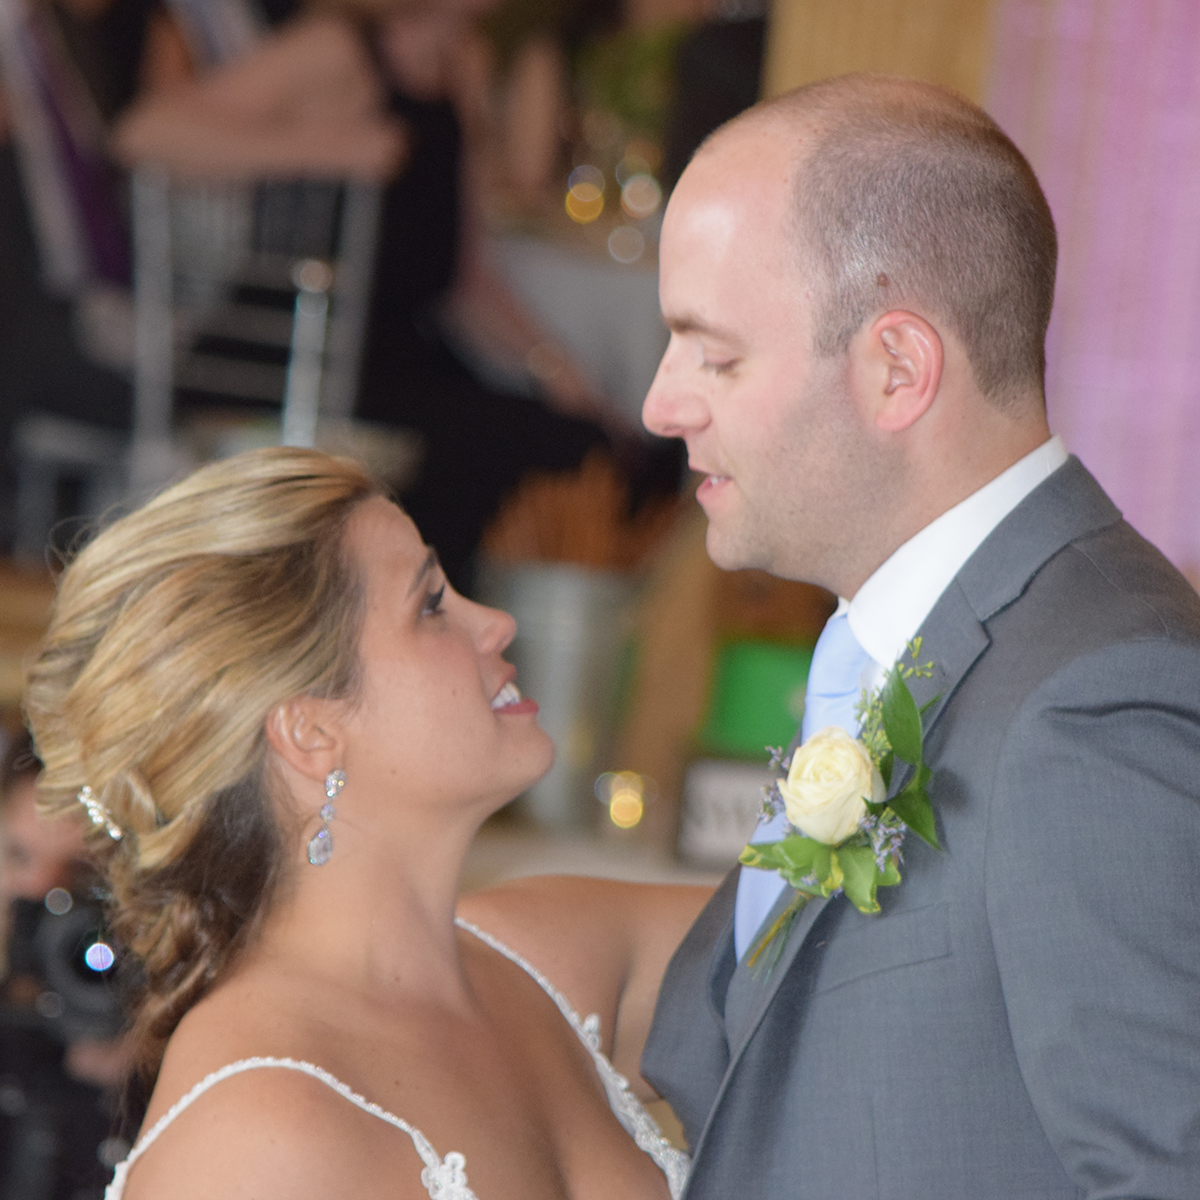 Erin and Tim's wedding at Marriott Syracuse Downtown Persian Terrace, August 2019. Photos by Peter Naughton peterthedj.com